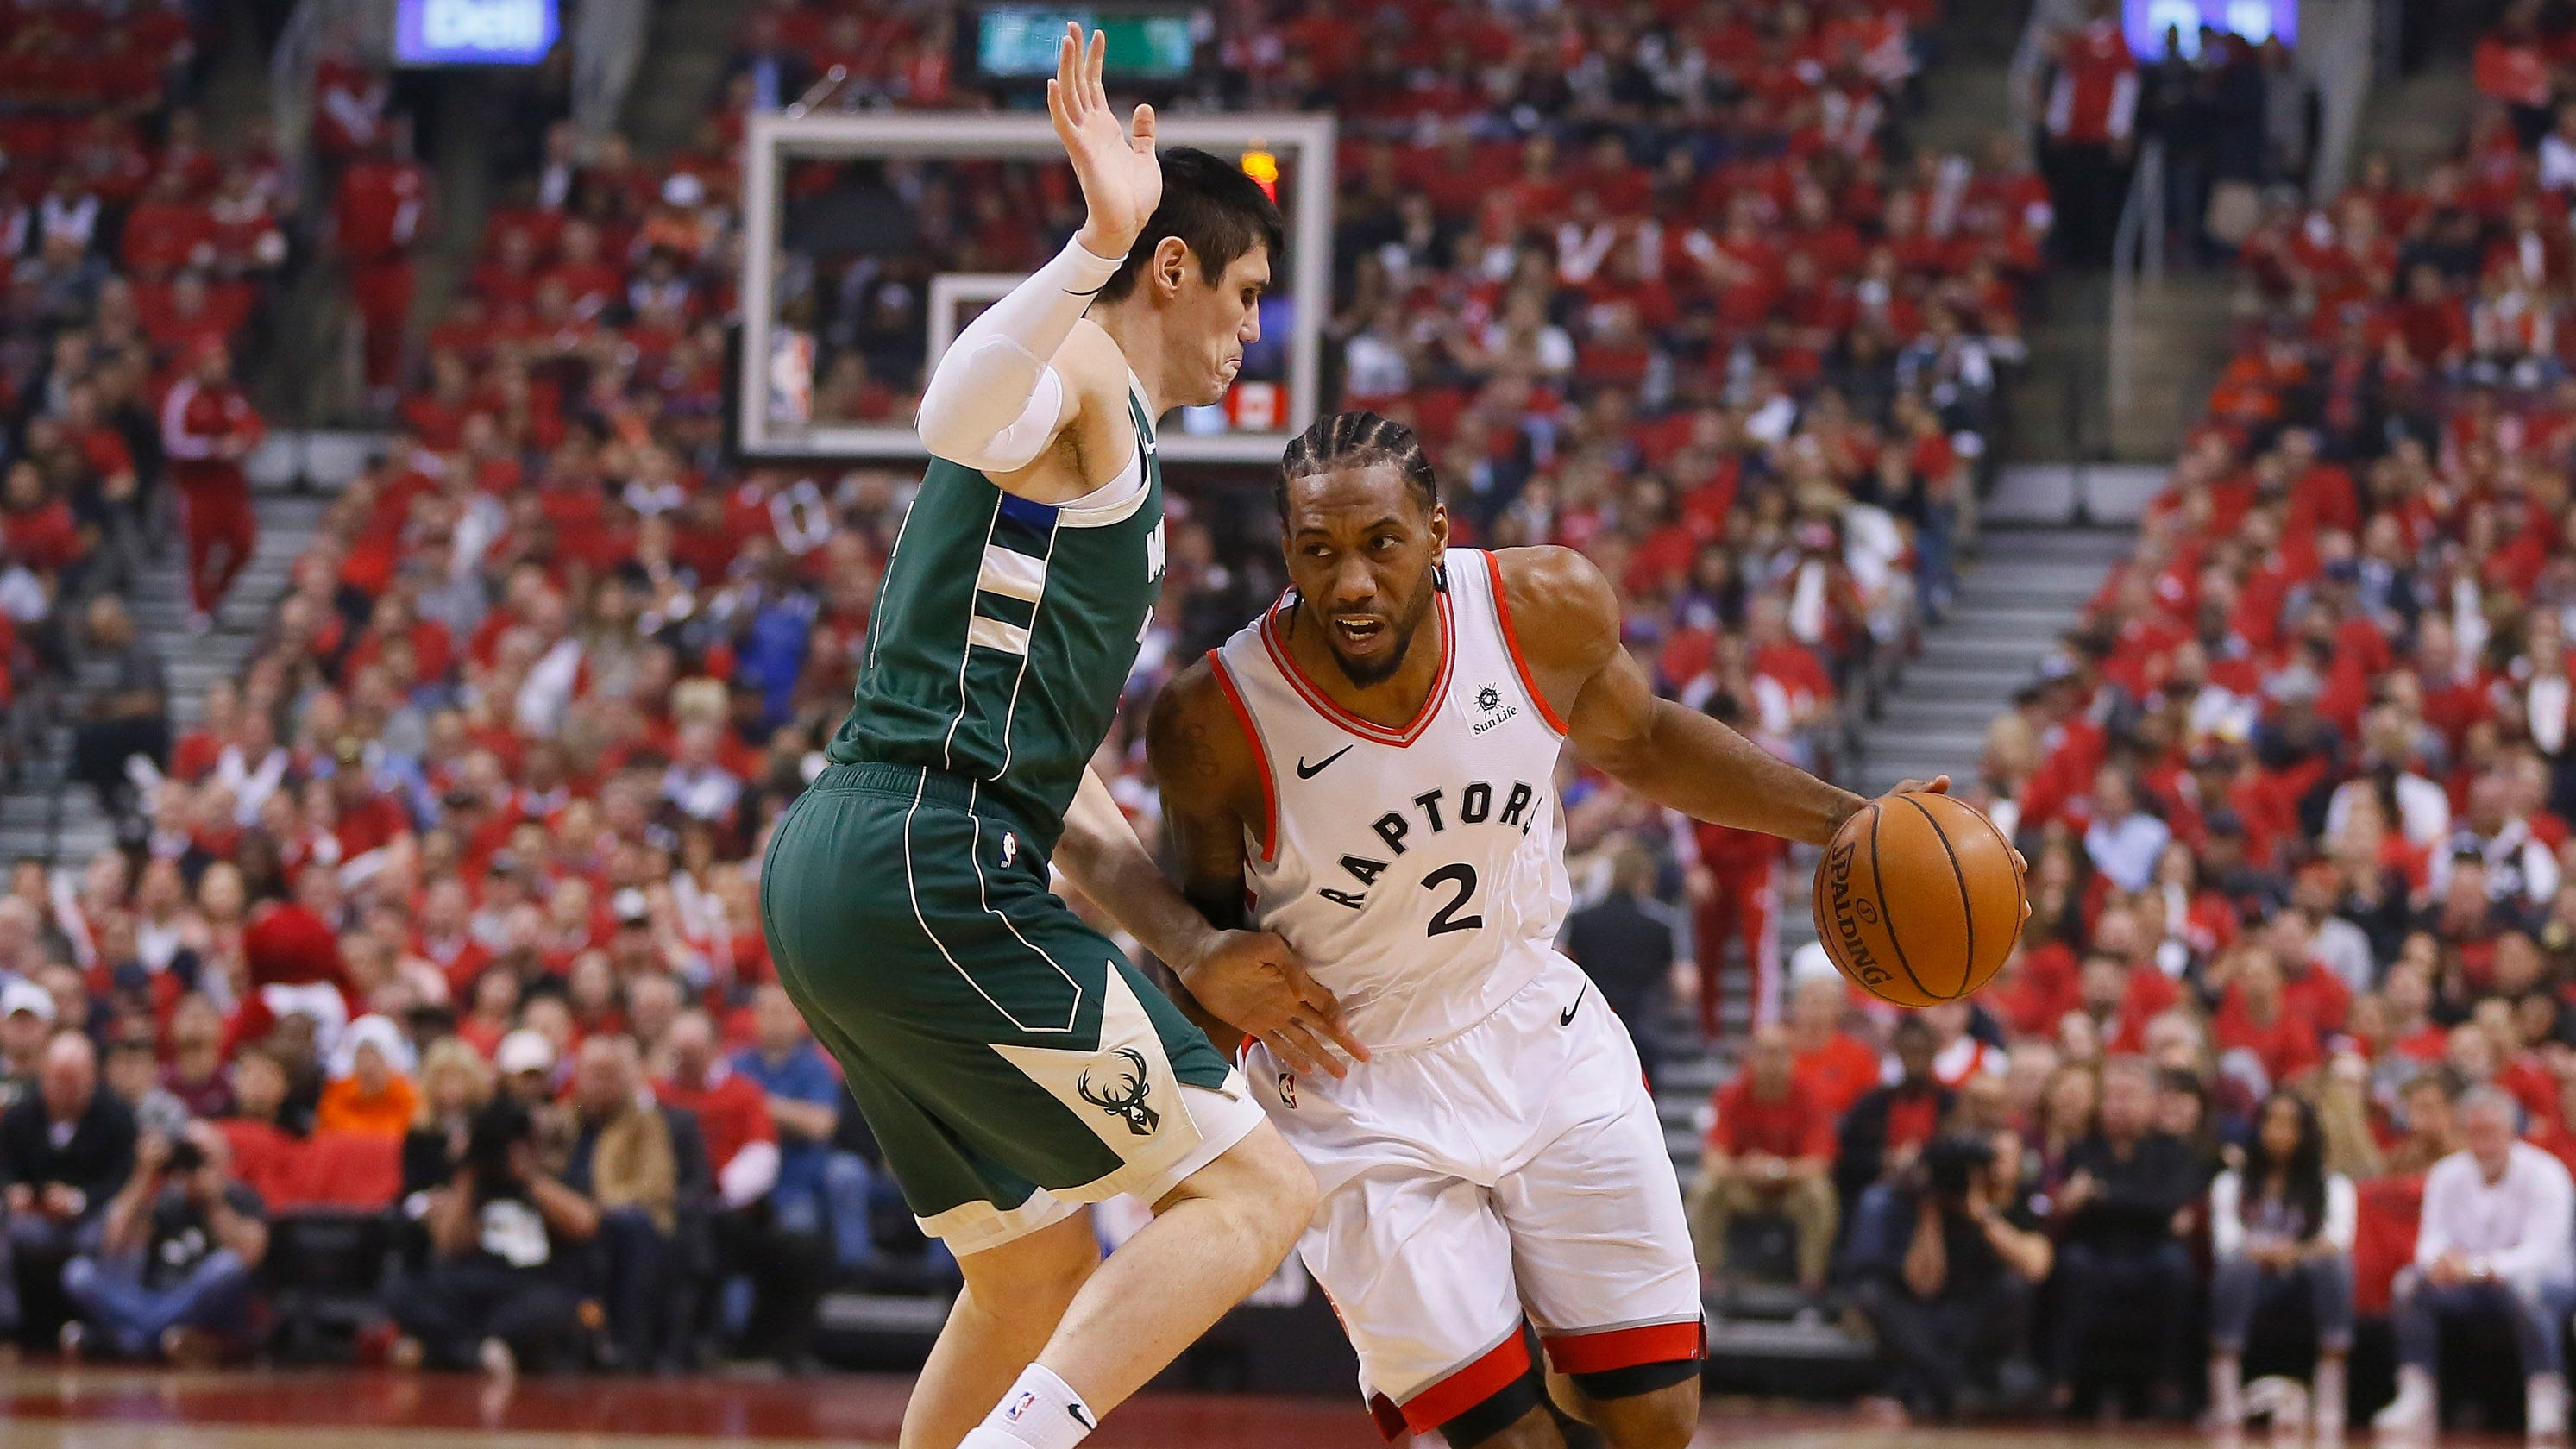 NBA Playoffs: Raptors Beat Bucks In Game 4 To Even East Finals